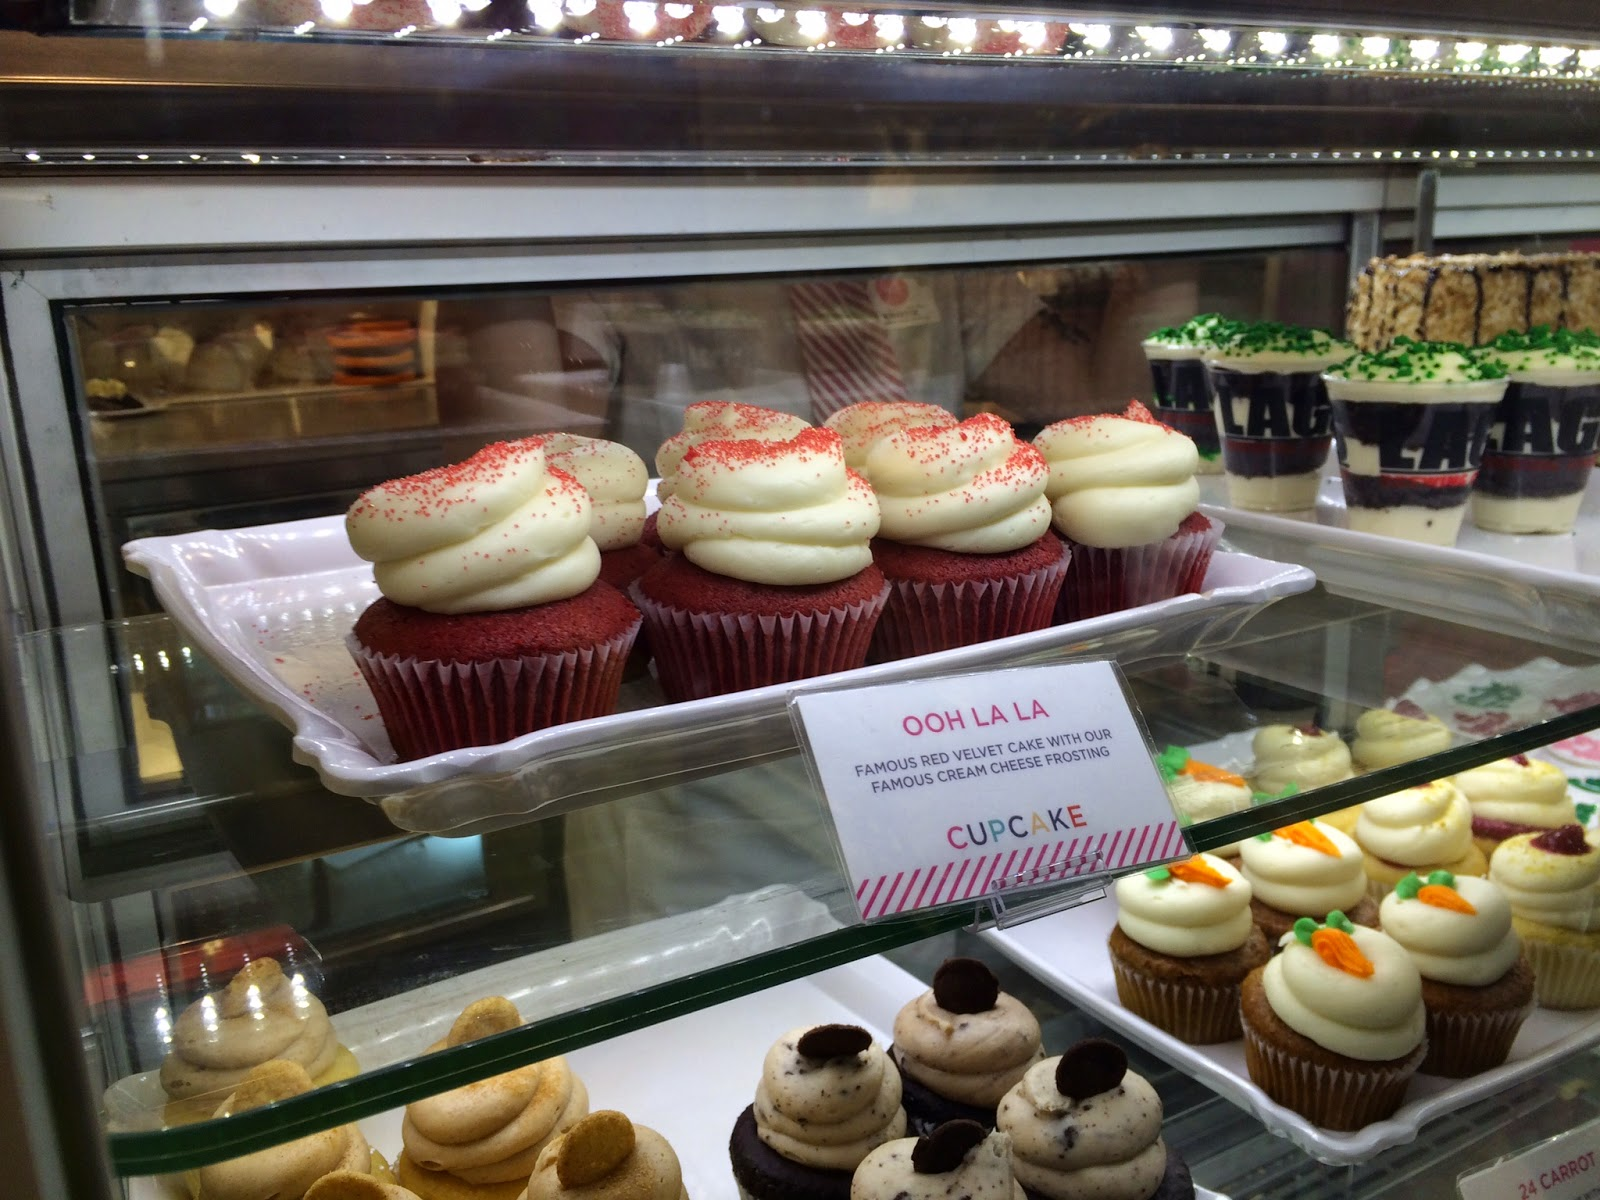 sift cupcake and dessert bar case Sugar addicts will find just what they're looking for at sift cupcake + dessert bar, a sweet spot nestled in the santa rosa area of santa rosasift cupcake + dessert bar patrons can find street parking at the mendocino ave location.